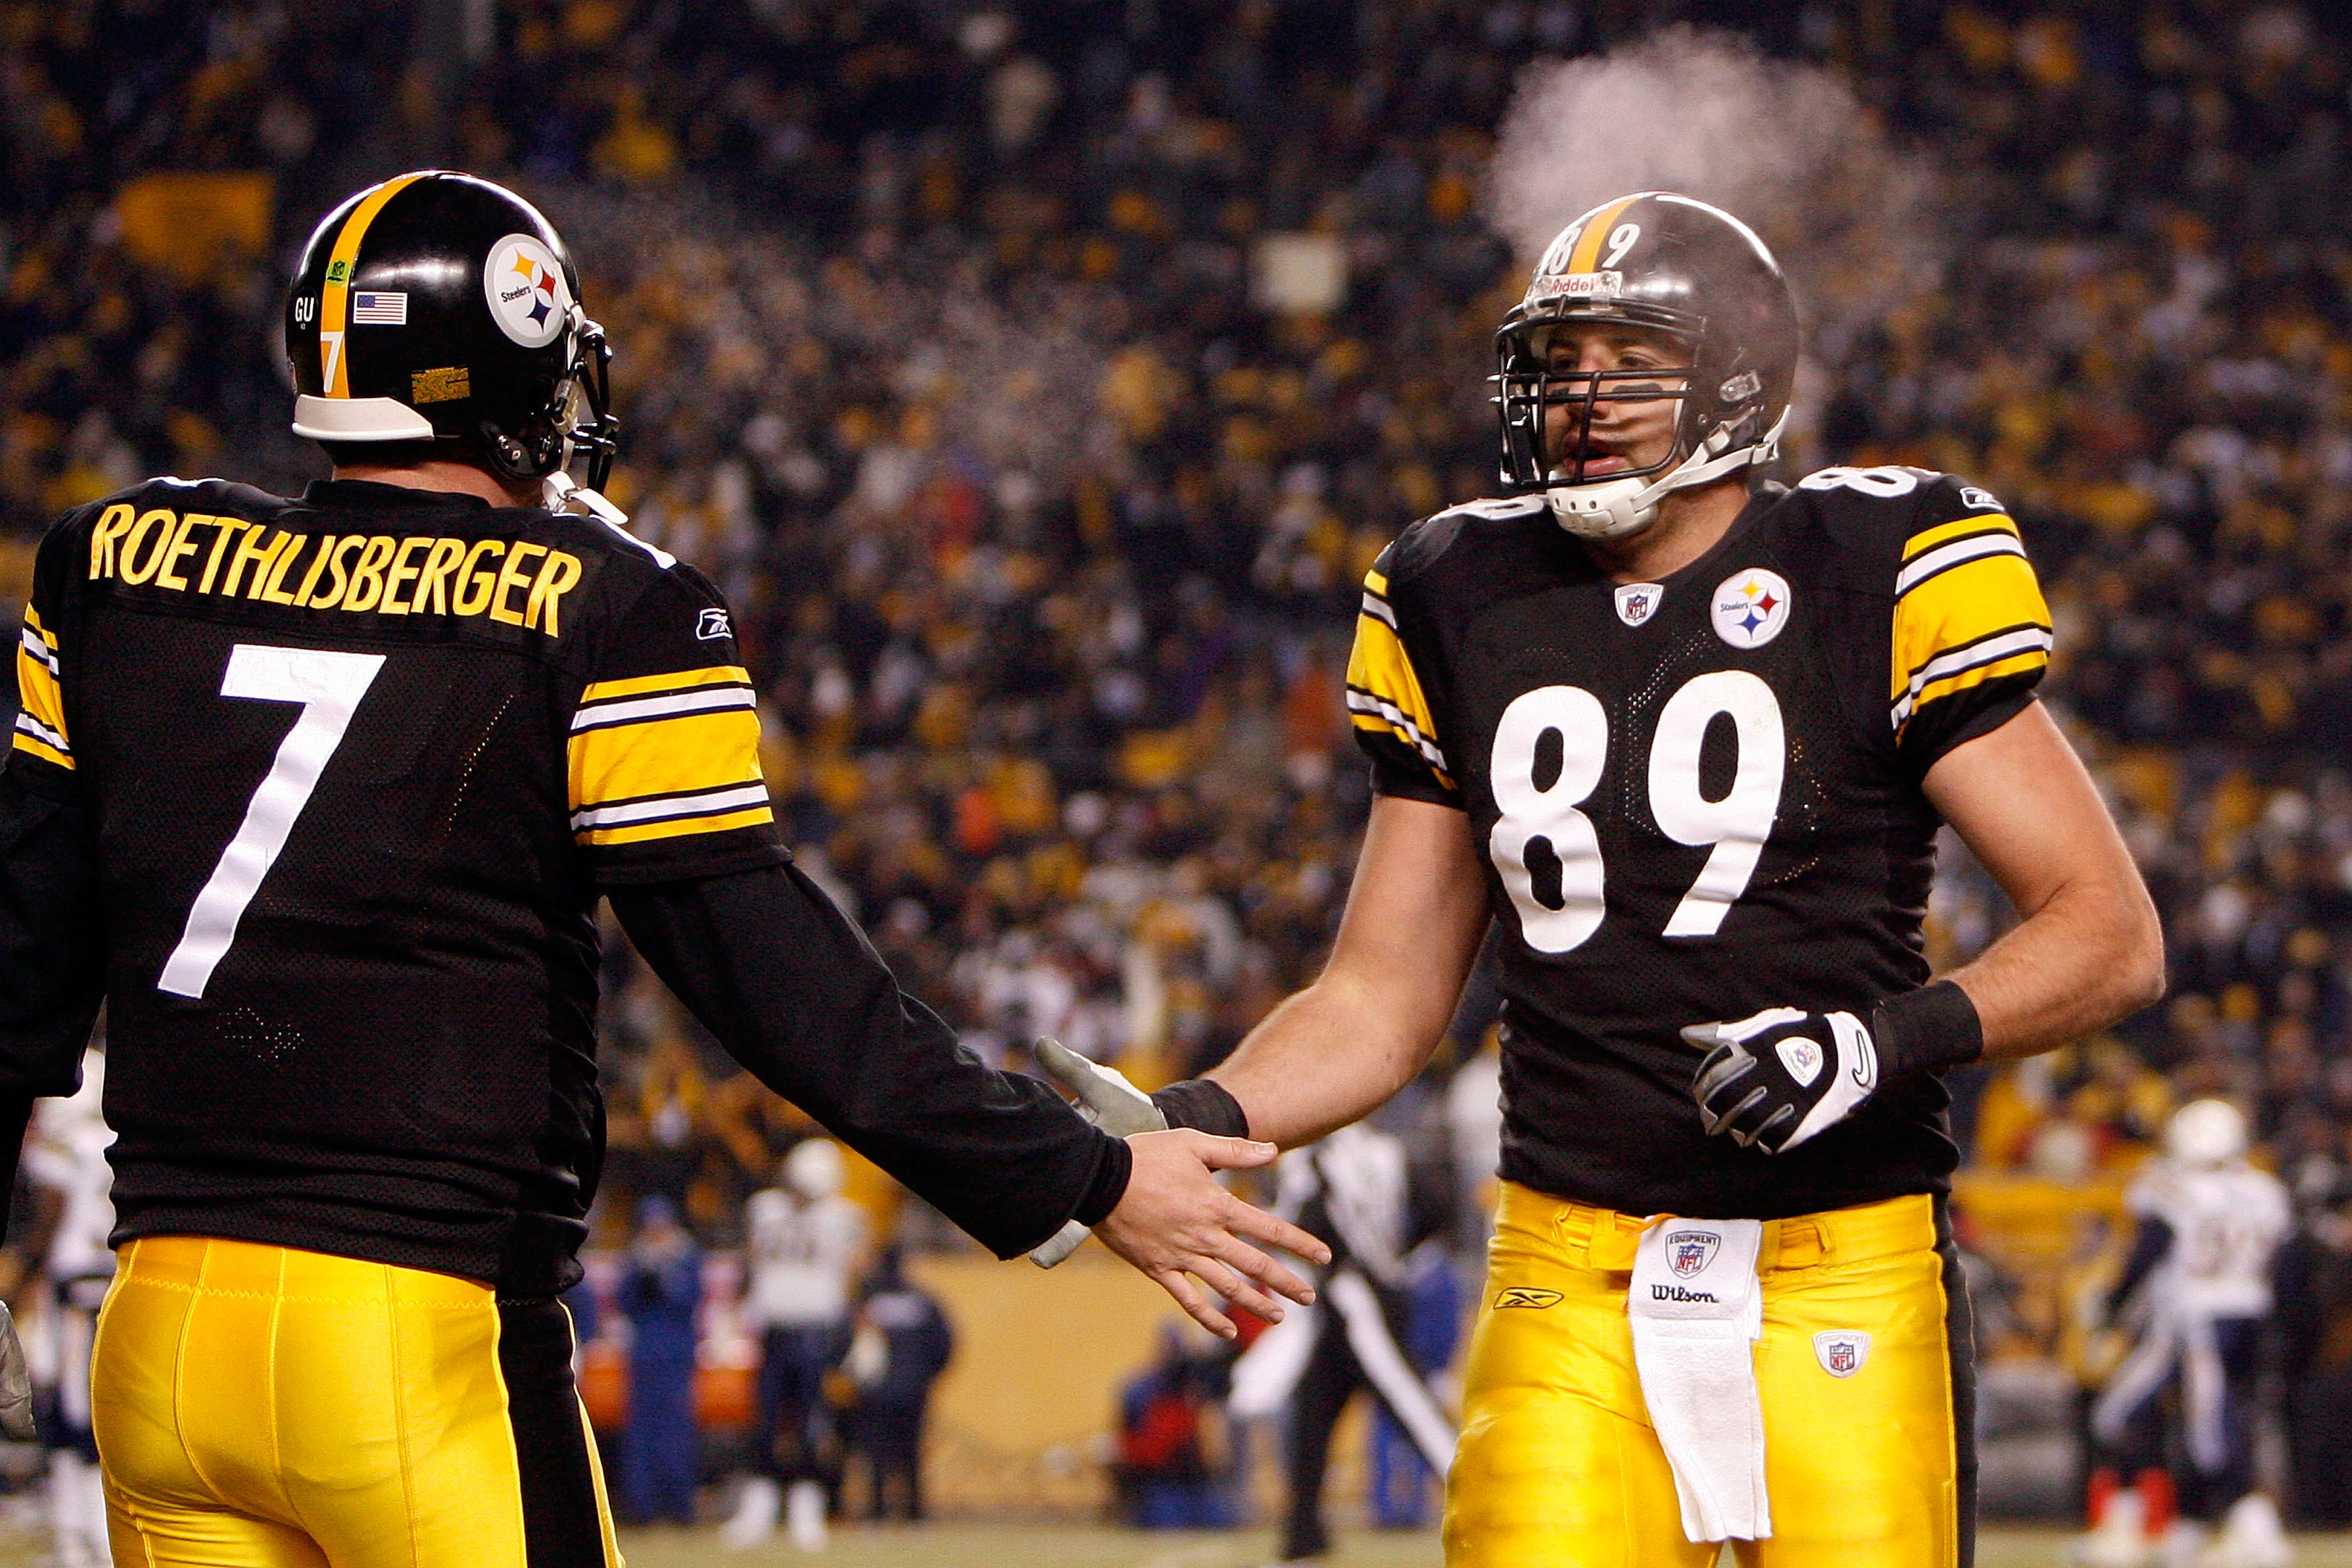 PITTSBURGH - JANUARY 11:  (L-R) Ben Roethlisberger #7 and Matt Spaeth #89 of the Pittsburgh Steelers celebrate after Heath Miller #83 scored a 8-yard touchdown reception in the third quarter against the San Diego Chargers during their AFC Divisional Playo